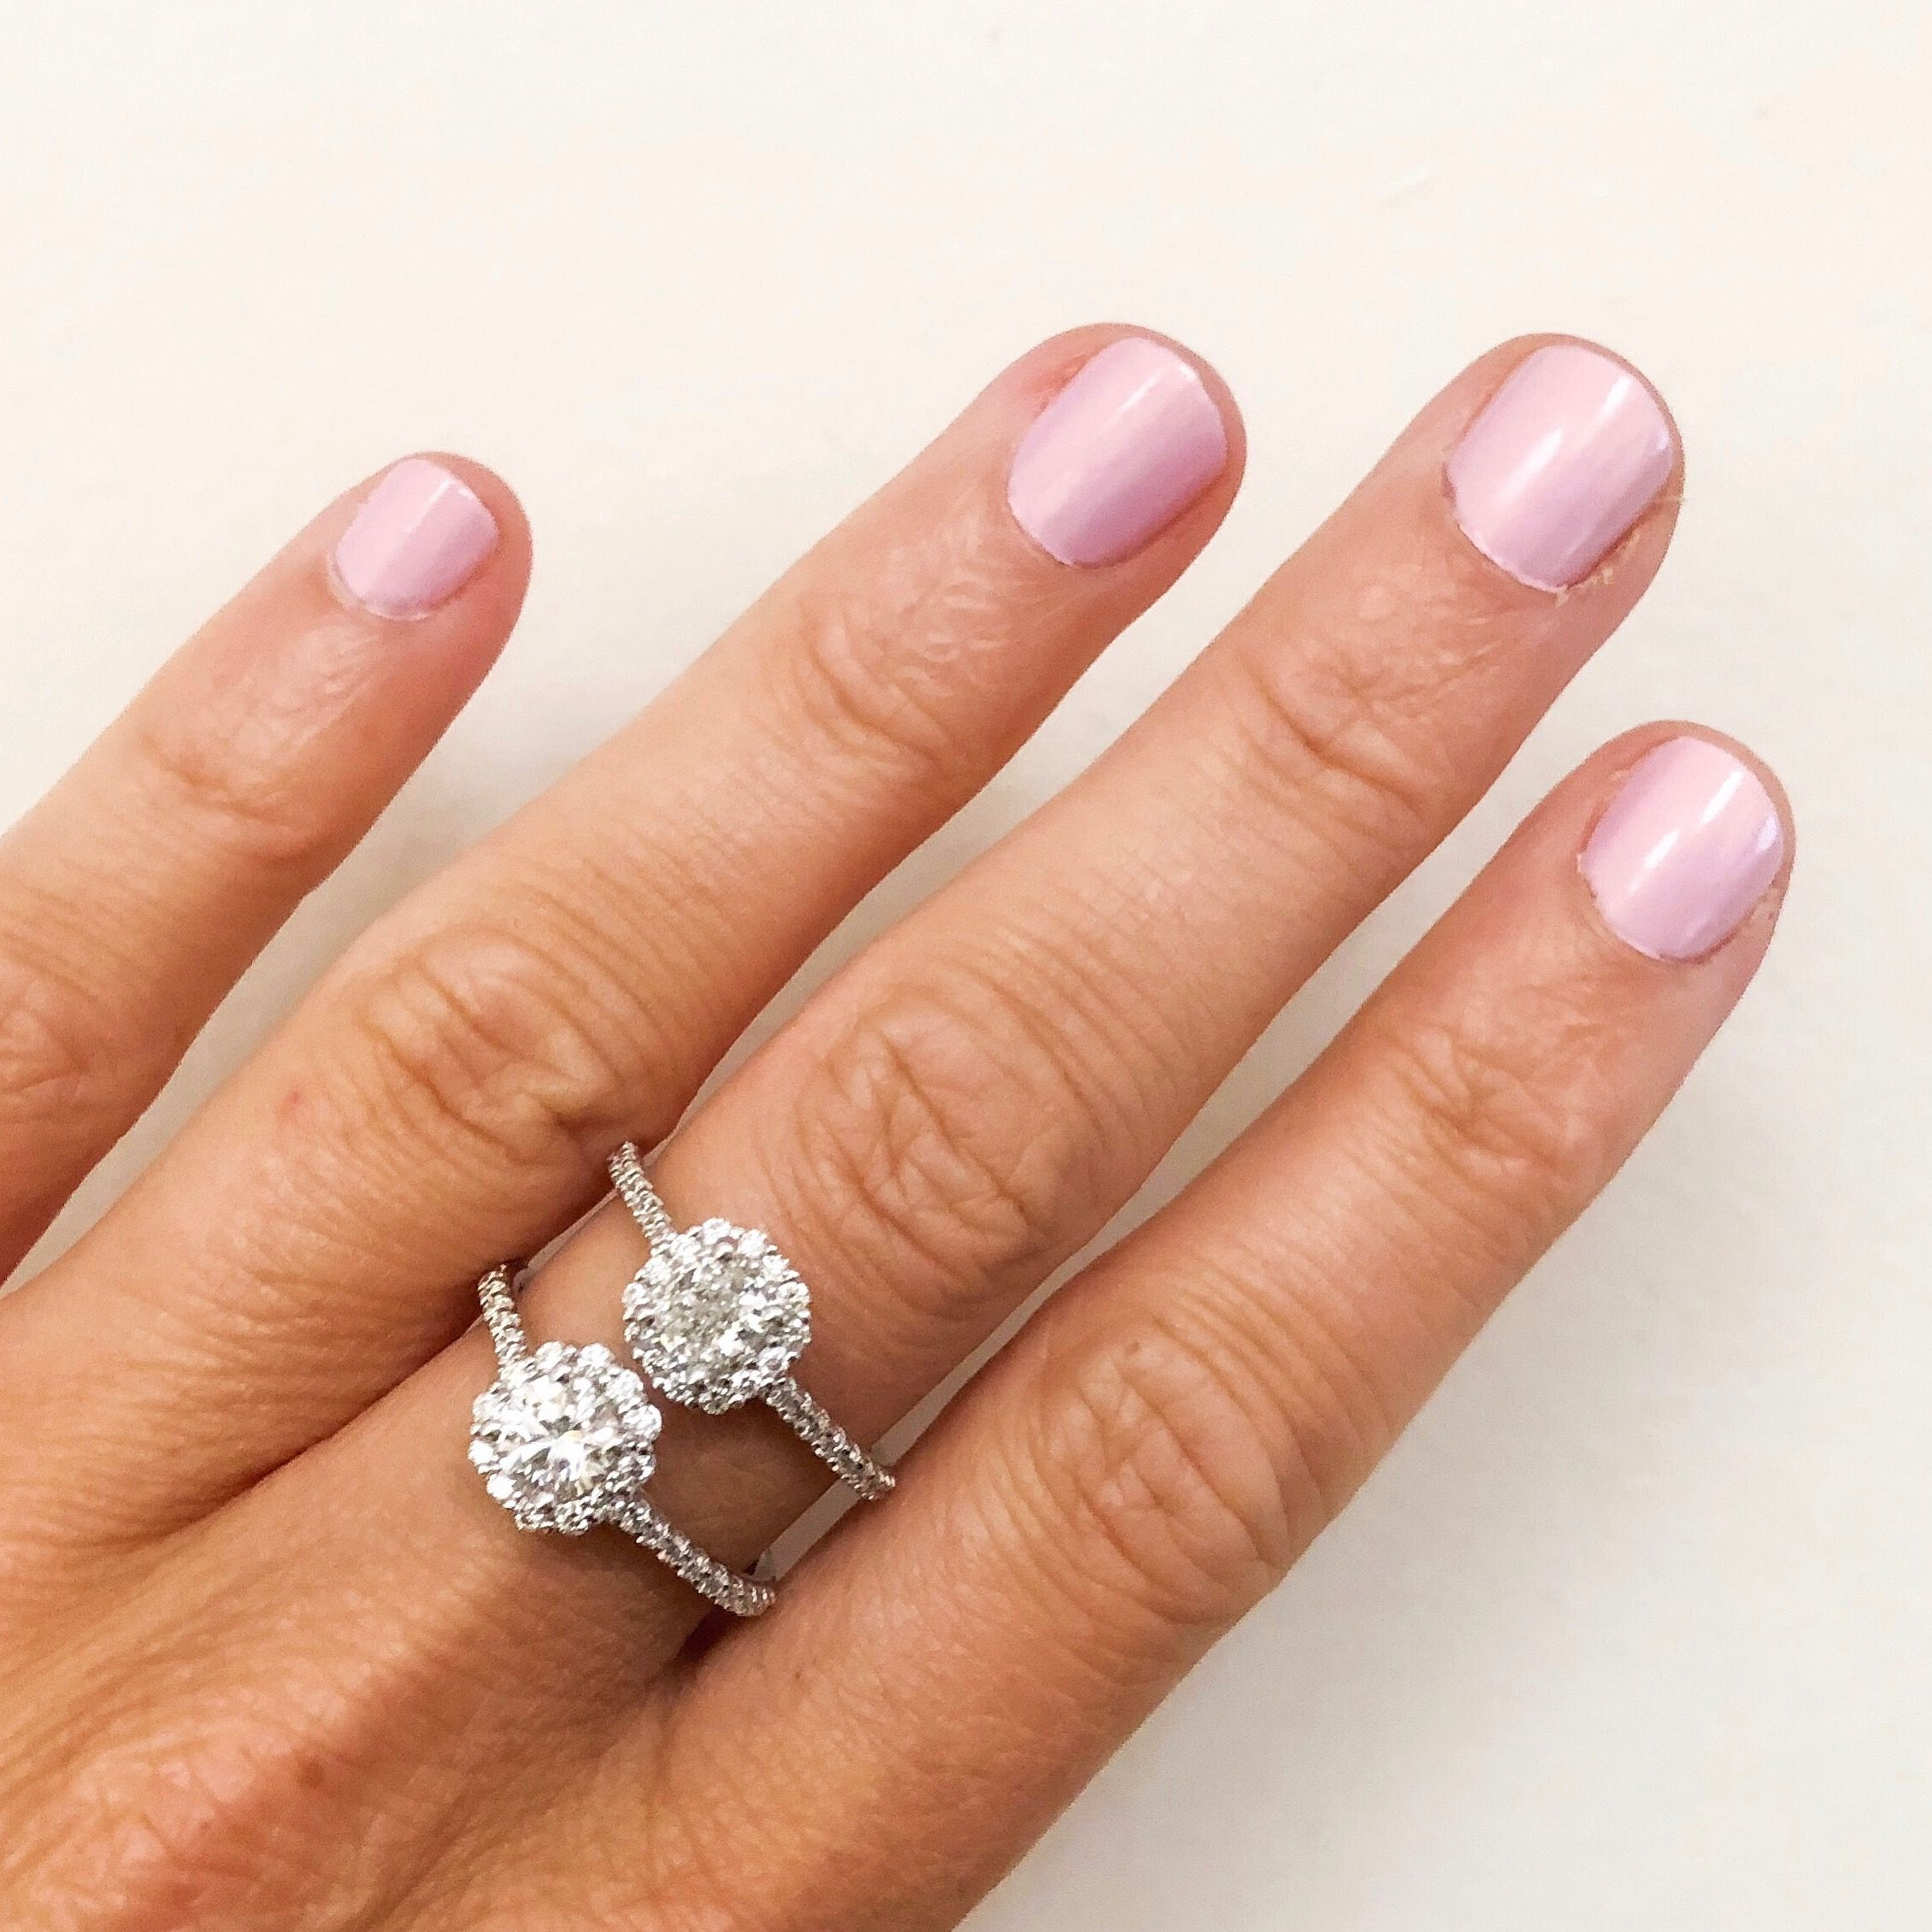 In Love With These Sparkling Halo Engagement Rings! View The Entire Pertaining To 2017 Sparkling Halo Rings (View 4 of 25)